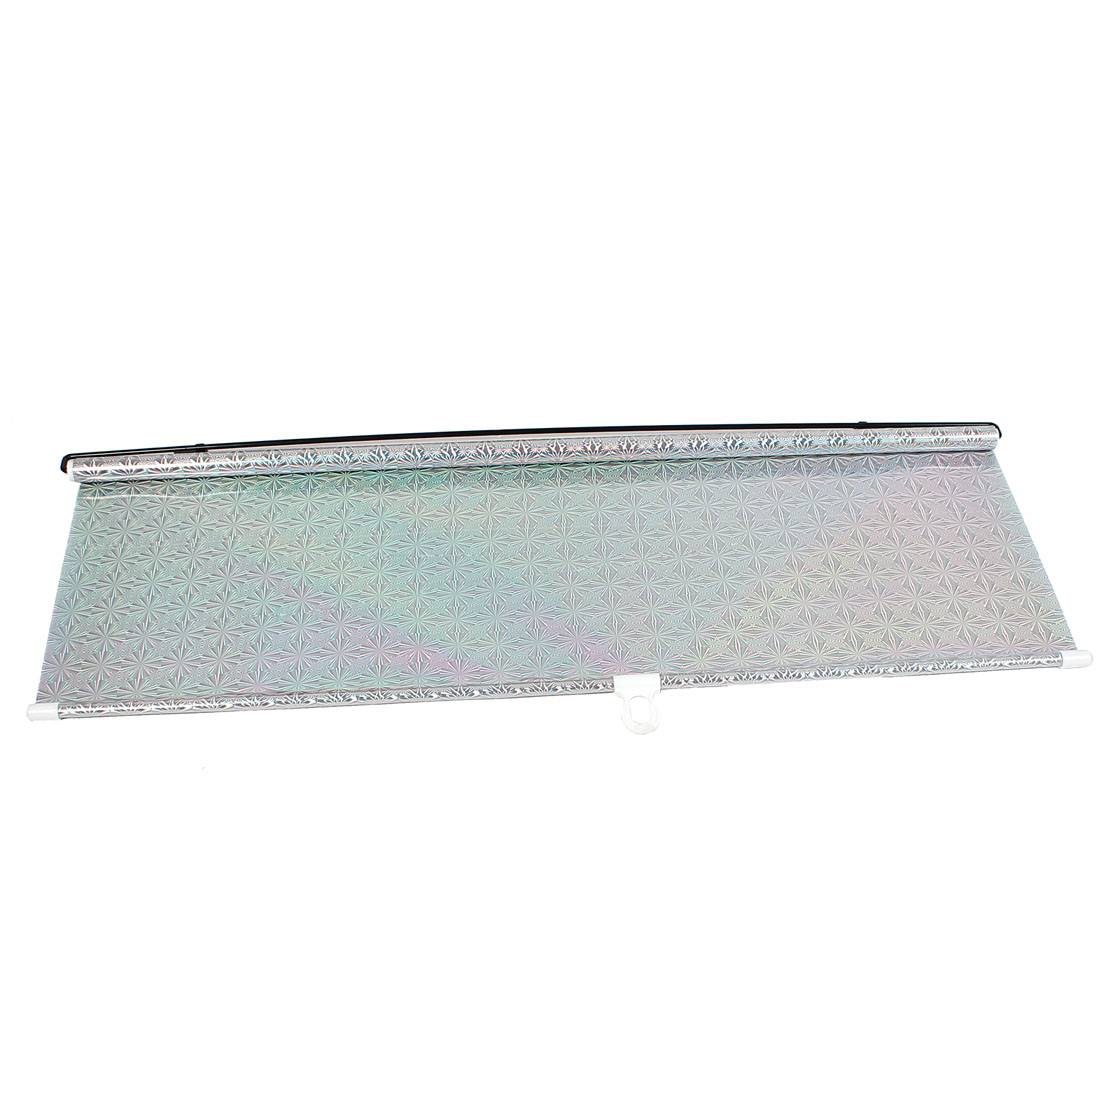 Vehicle Car Reflective Sunshield Window Sun Shade Protector Silver Tone 125cm x 68cm